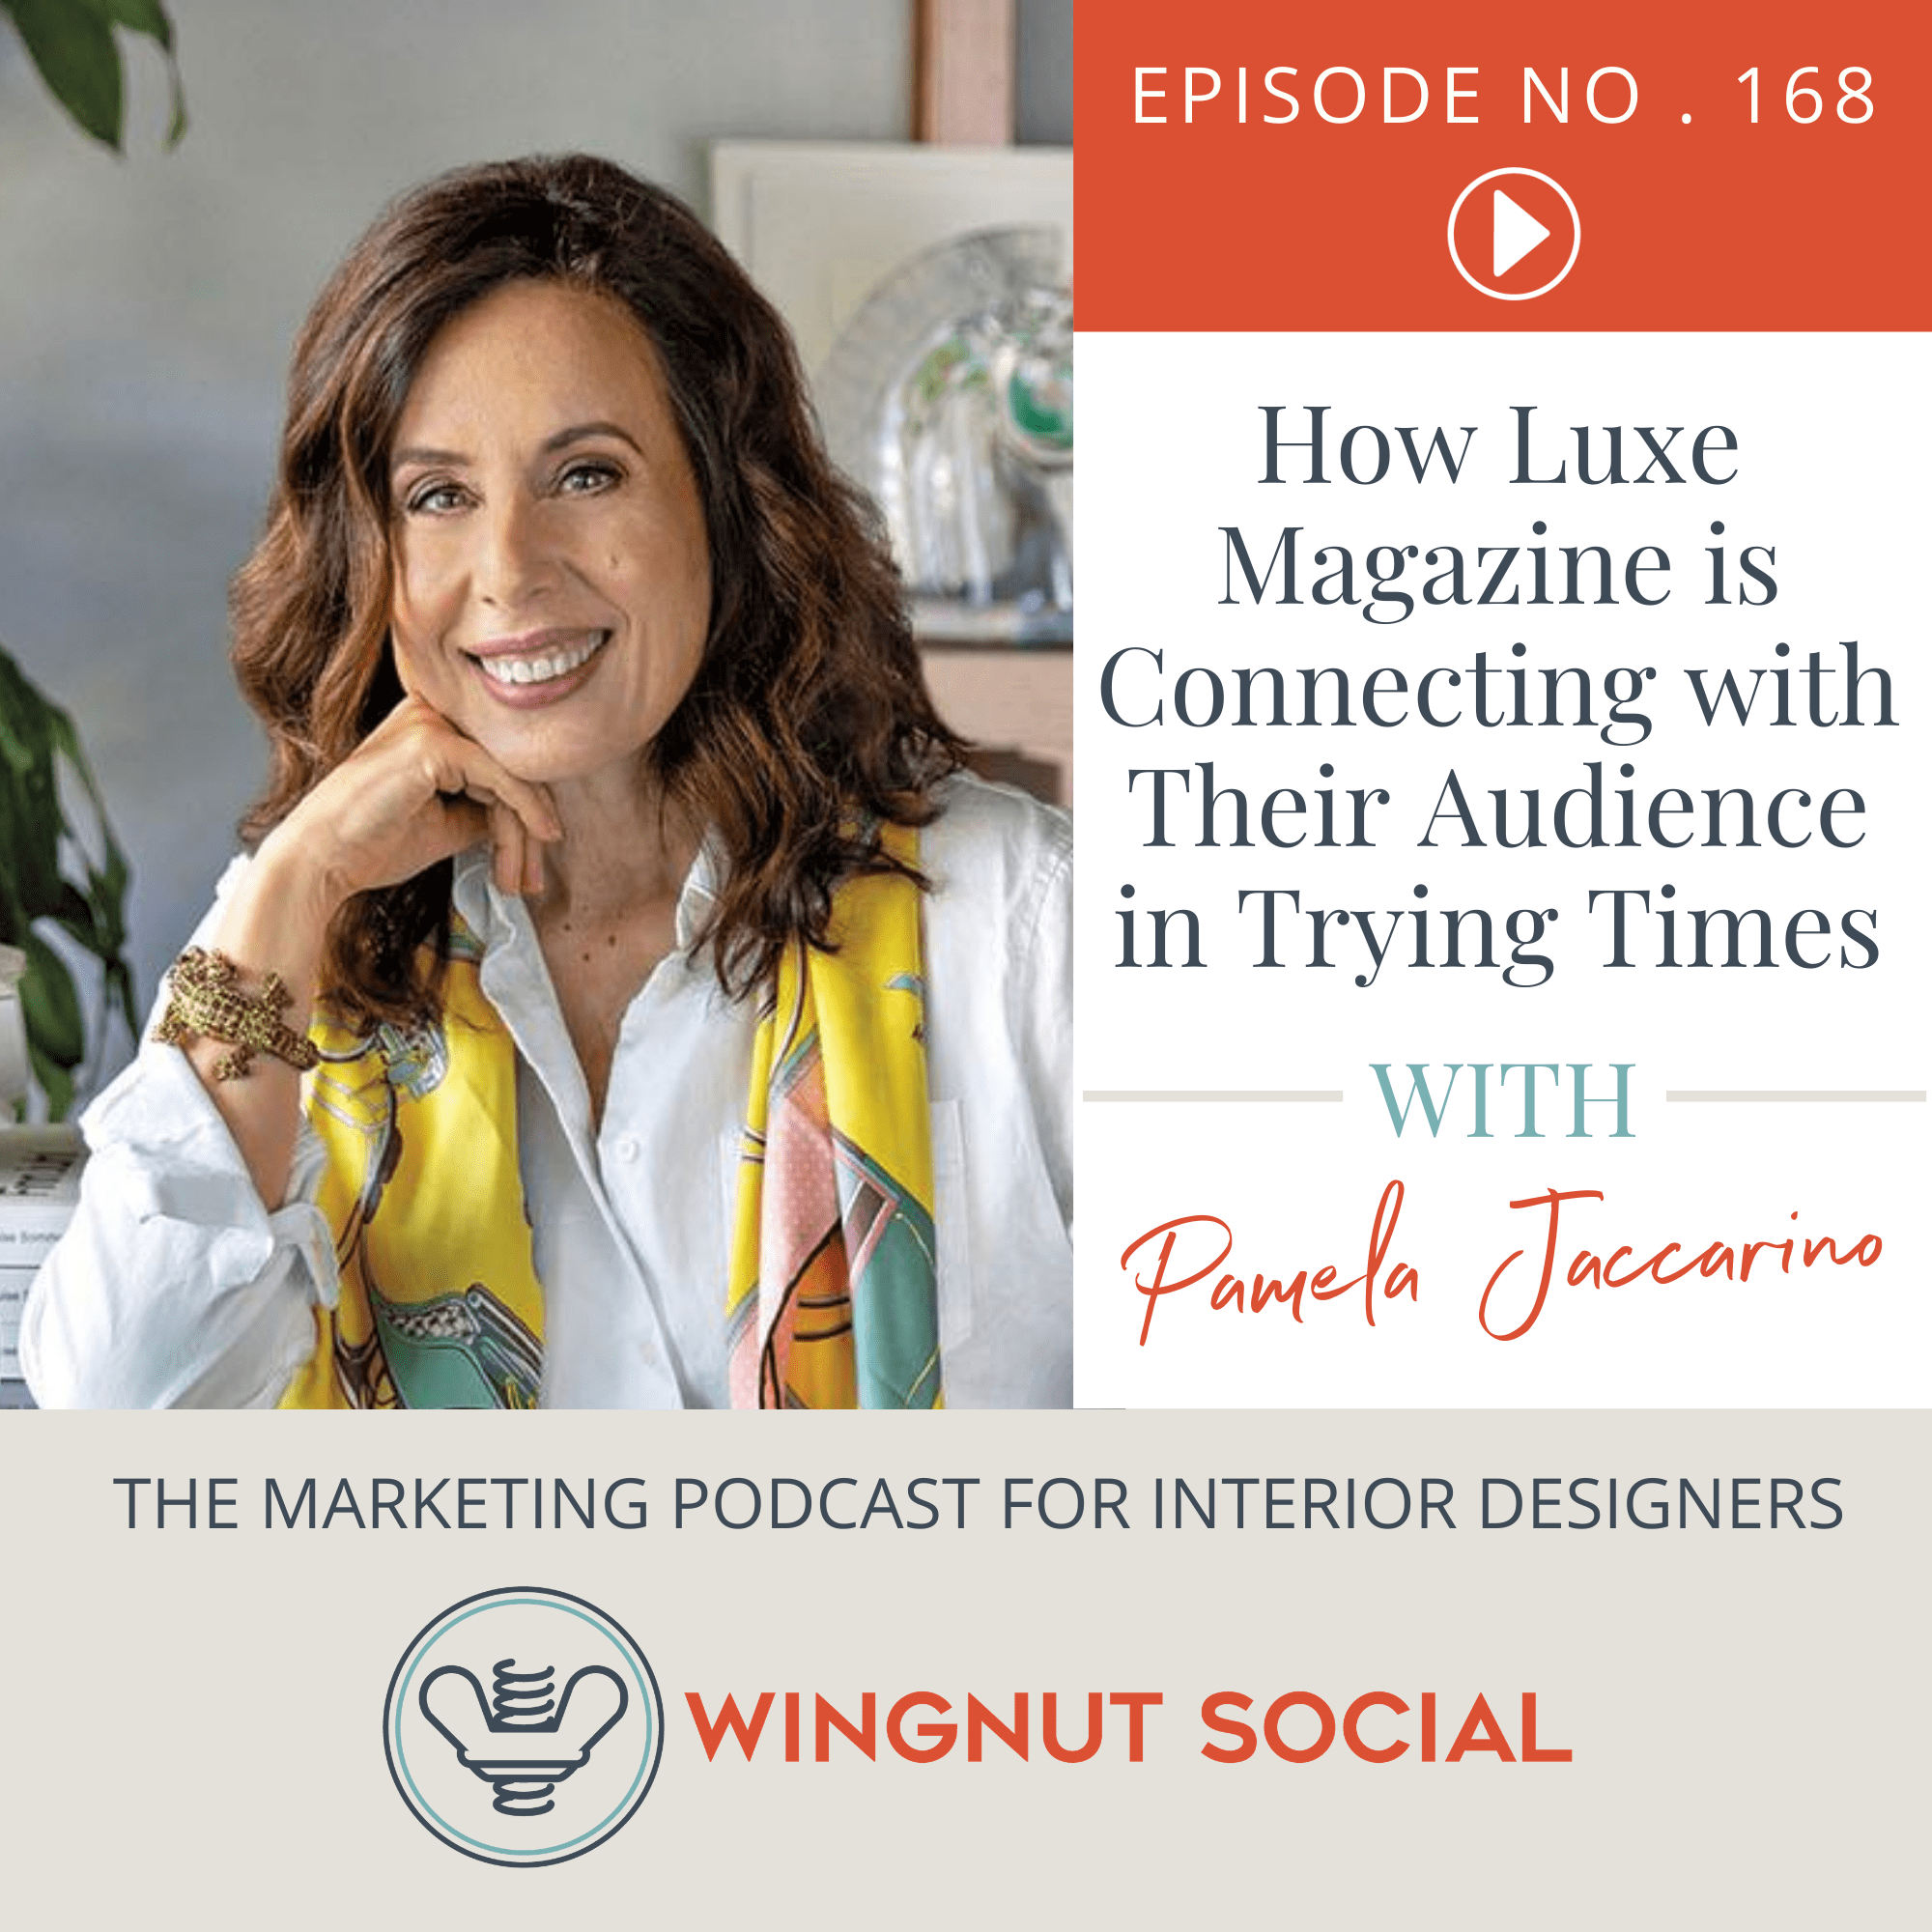 Pamela Jaccarino Shares How Luxe Magazine is Connecting with Their Audience in Trying Times - Episode 168